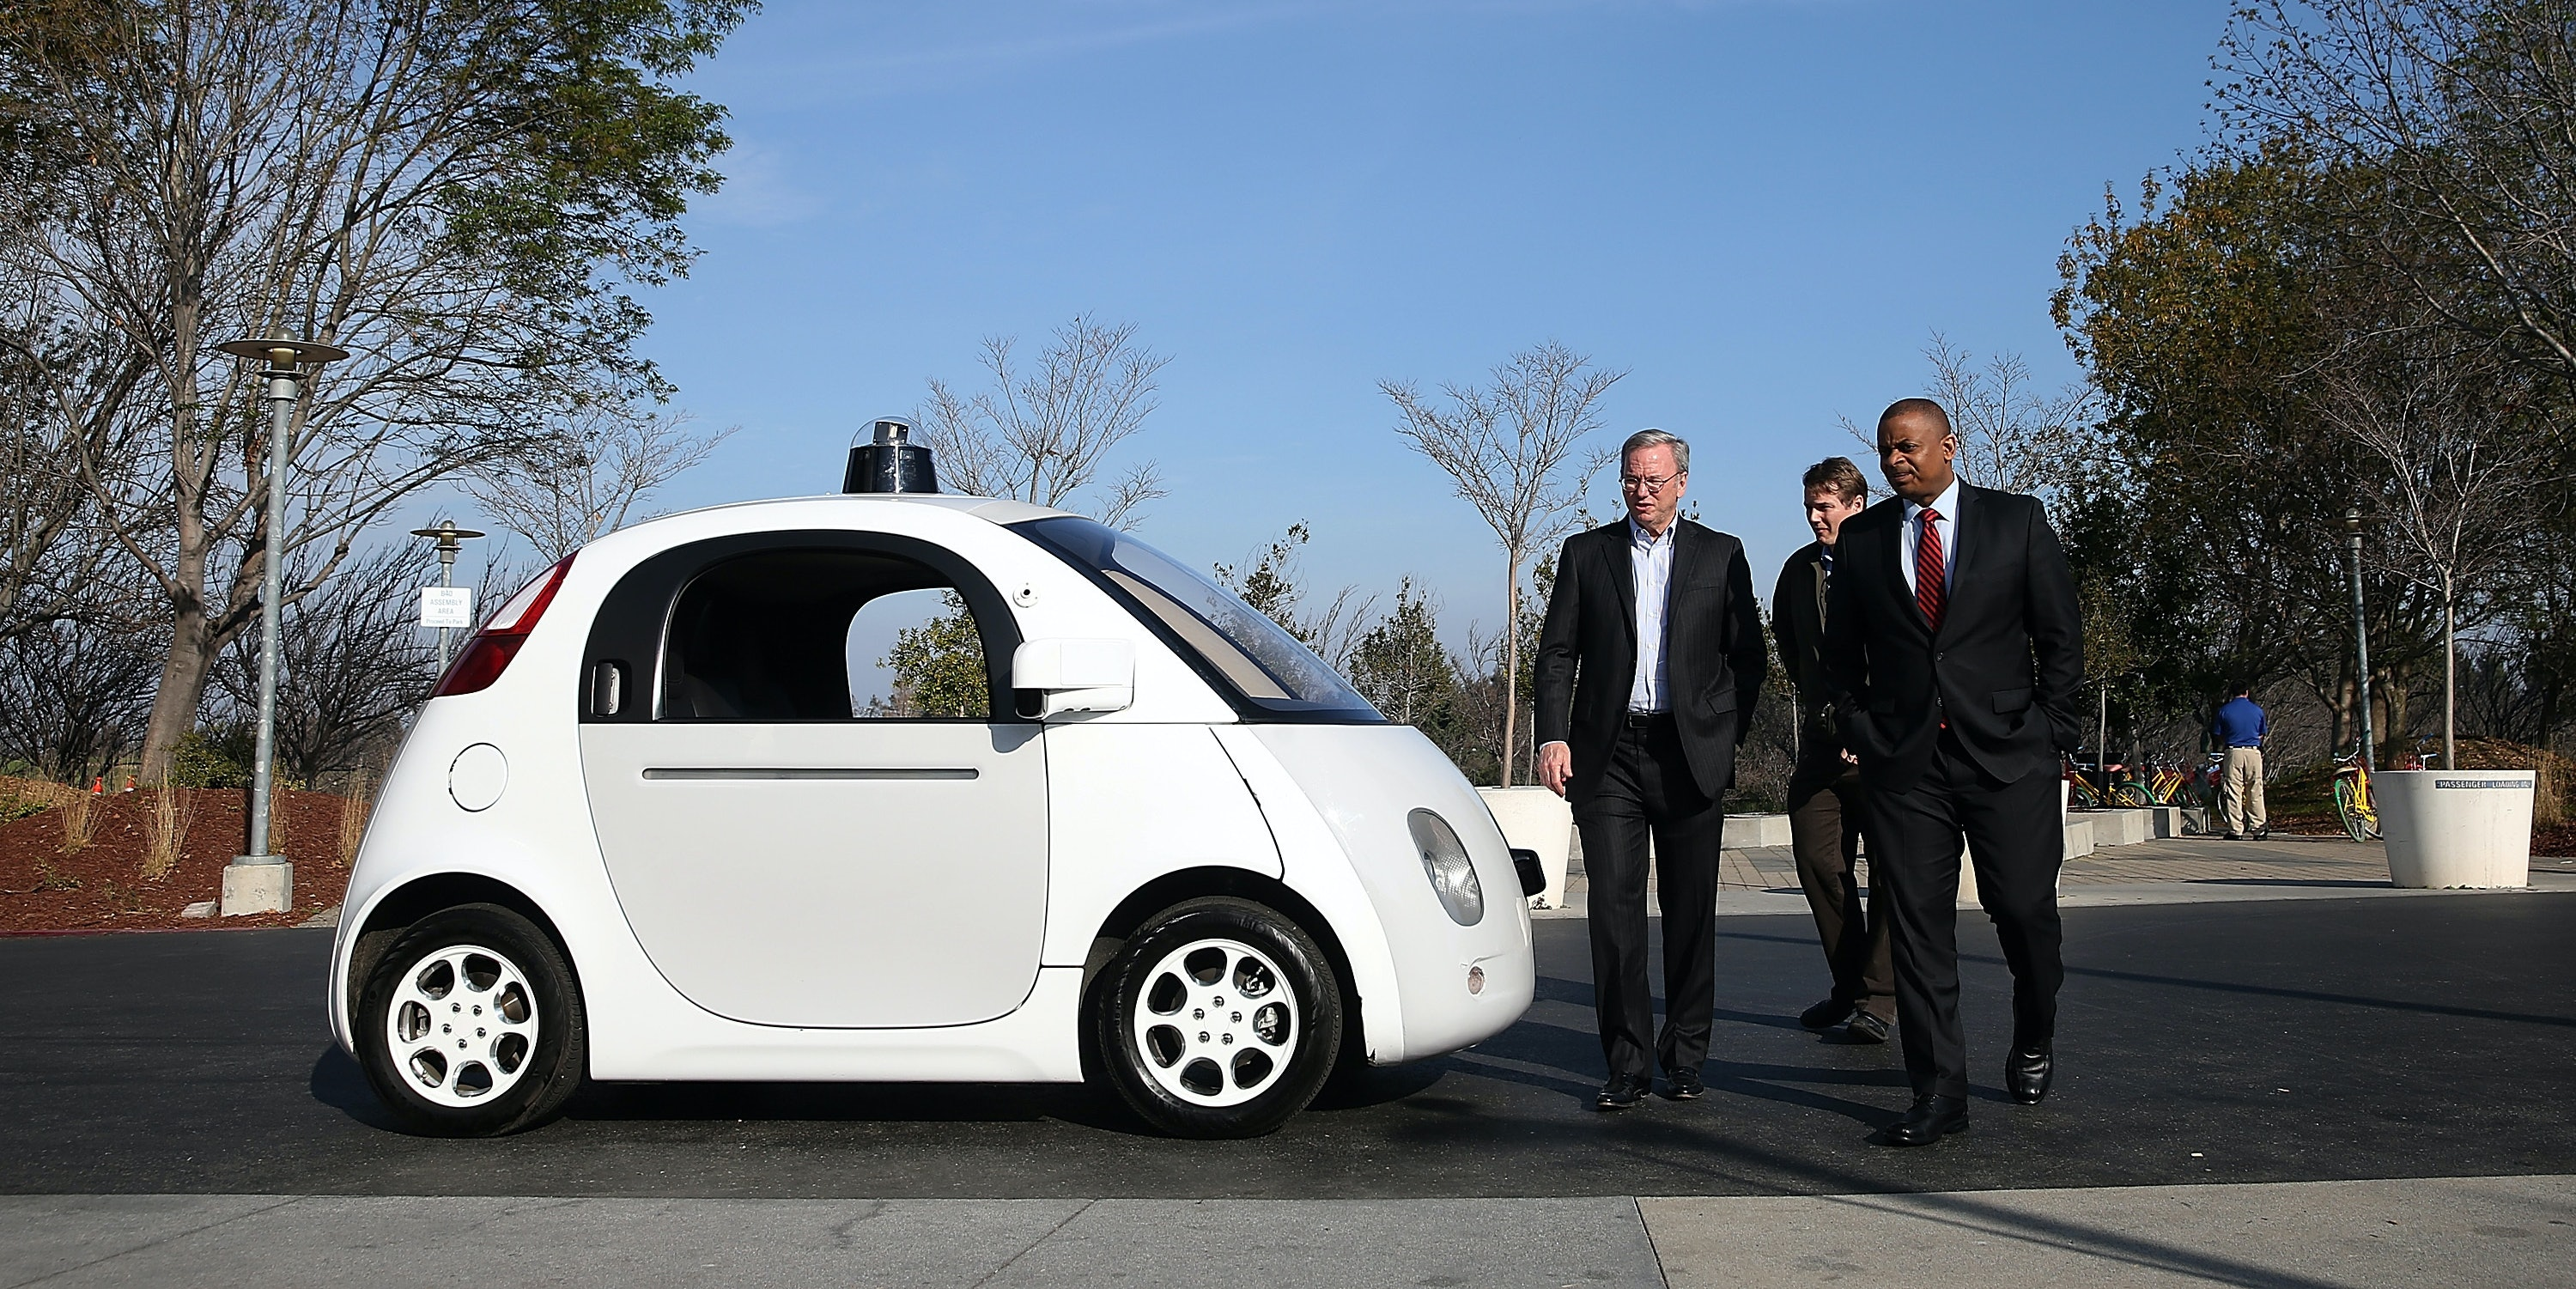 MOUNTAIN VIEW, CA - FEBRUARY 02:  U.S. Transportation Secretary Anthony Foxx (R) and Google Chairman Eric Schmidt (L) walk around a Google self-driving car at the Google headquarters on February 2, 2015 in Mountain View, California.  U.S. Transportation Secretary Anthony Foxx joined Google Chairman Eric Schmidt for a fireside chat where he unveiled Beyond Traffic, a new analysis from the U.S. Department of Transportation that anticipates the trends and choices facing our transportation system over the next three decades.  (Photo by Justin Sullivan/Getty Images)